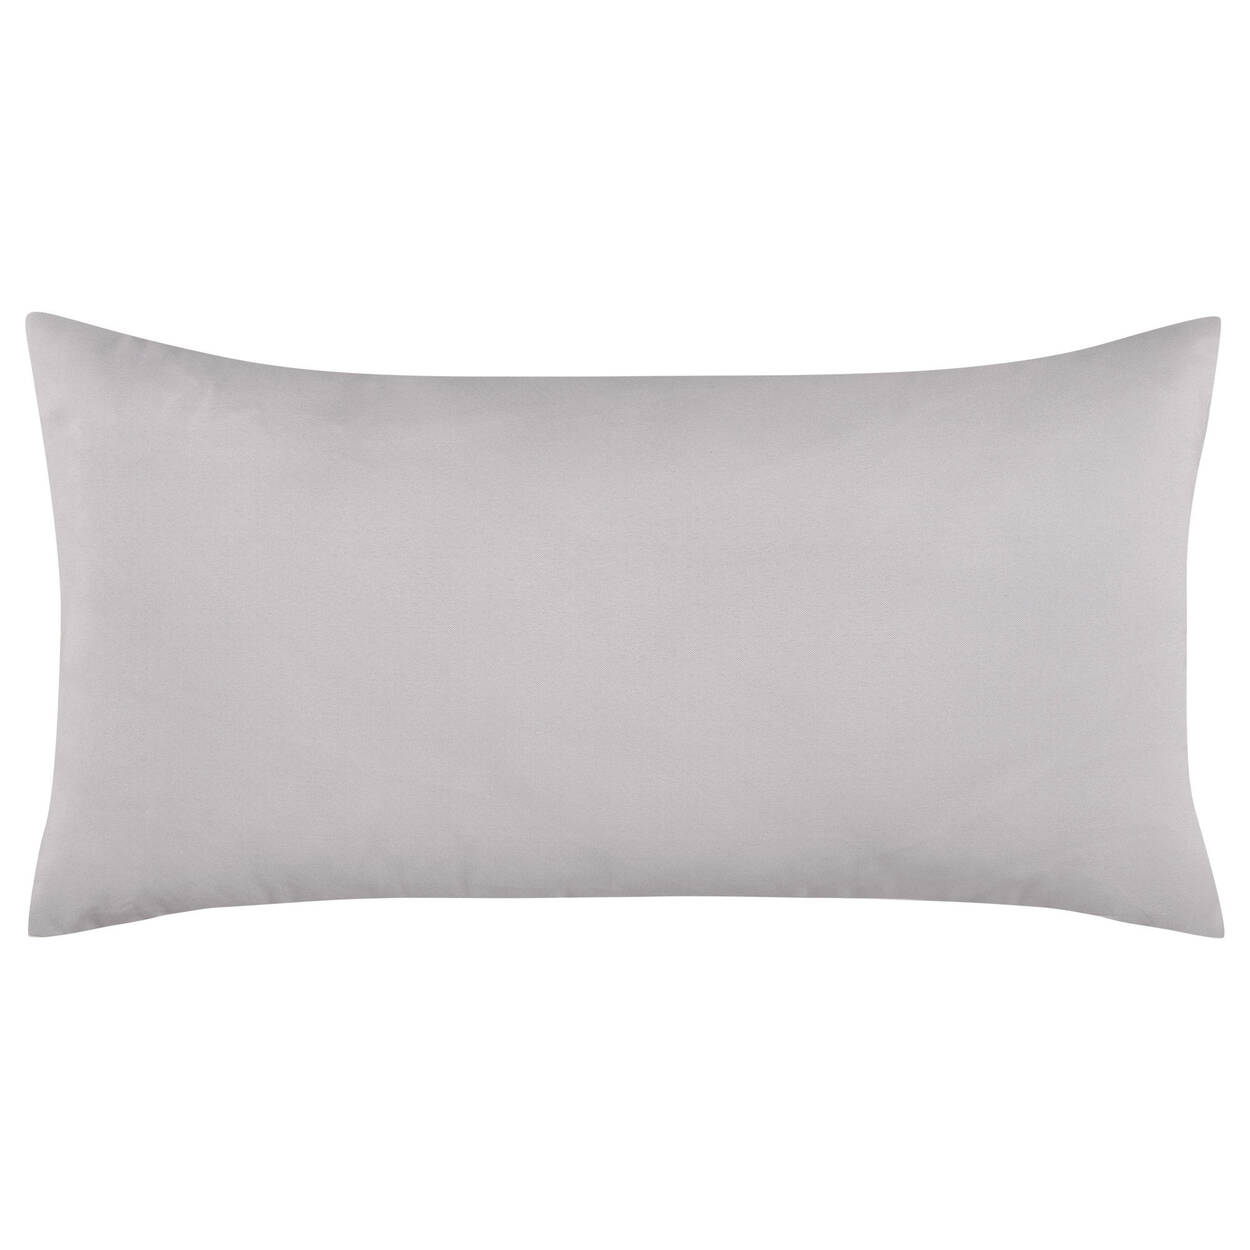 "Inhale Decorative Lumbar Pillow 11"" X 21"""